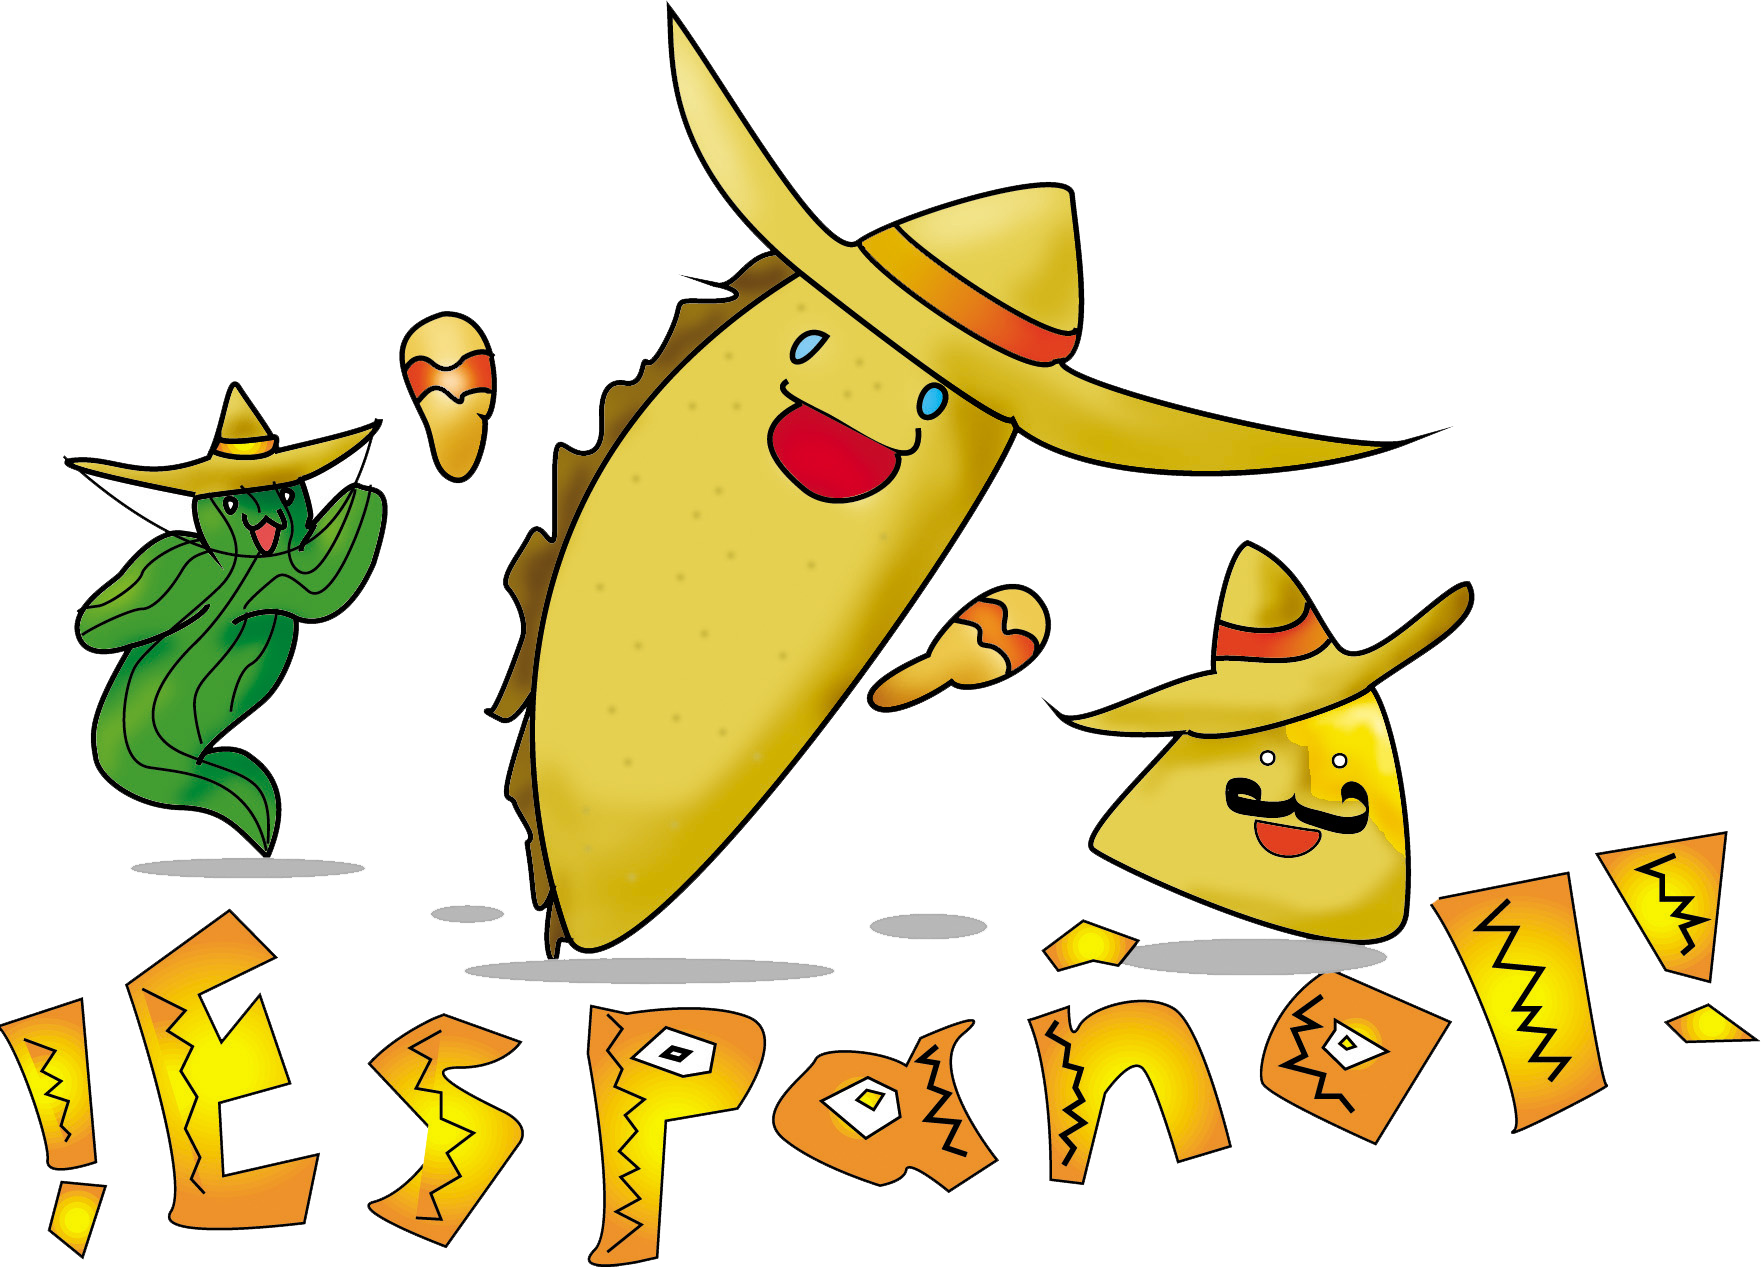 Free Spanish Sign Cliparts, Download Free Clip Art, Free Clip Art on.